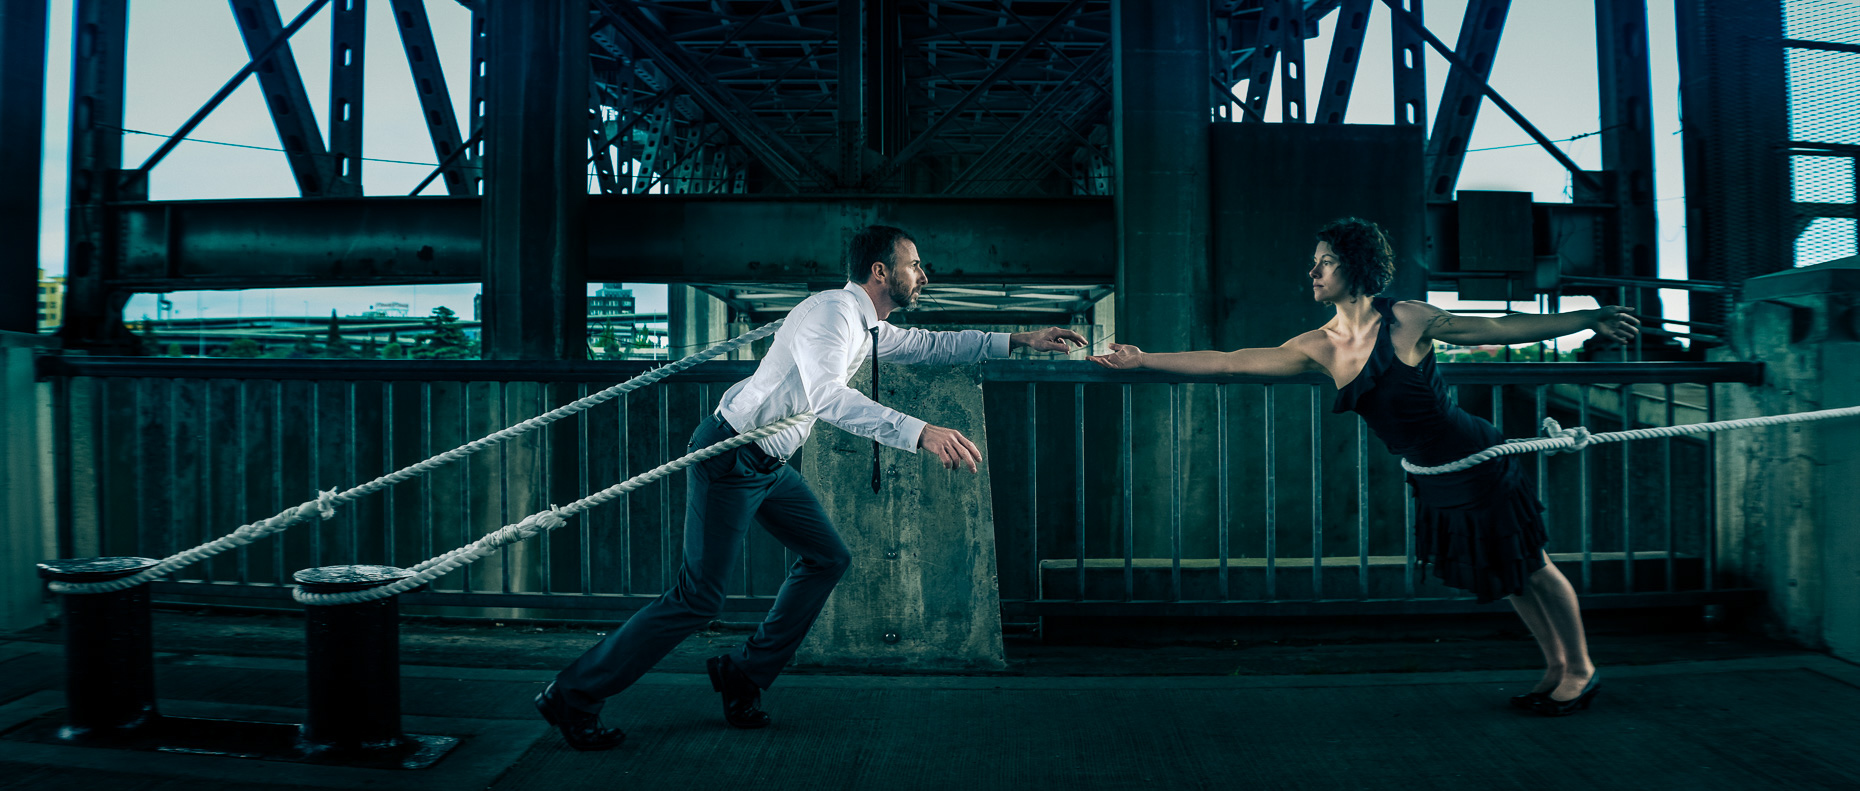 In this scene, Modern dancers Noel Plemons and Rachael Lembo practice social distance in this award-winning image under Morrison Bridge. The dancers reach towards each other, but are held back by ropes by Andy Batt